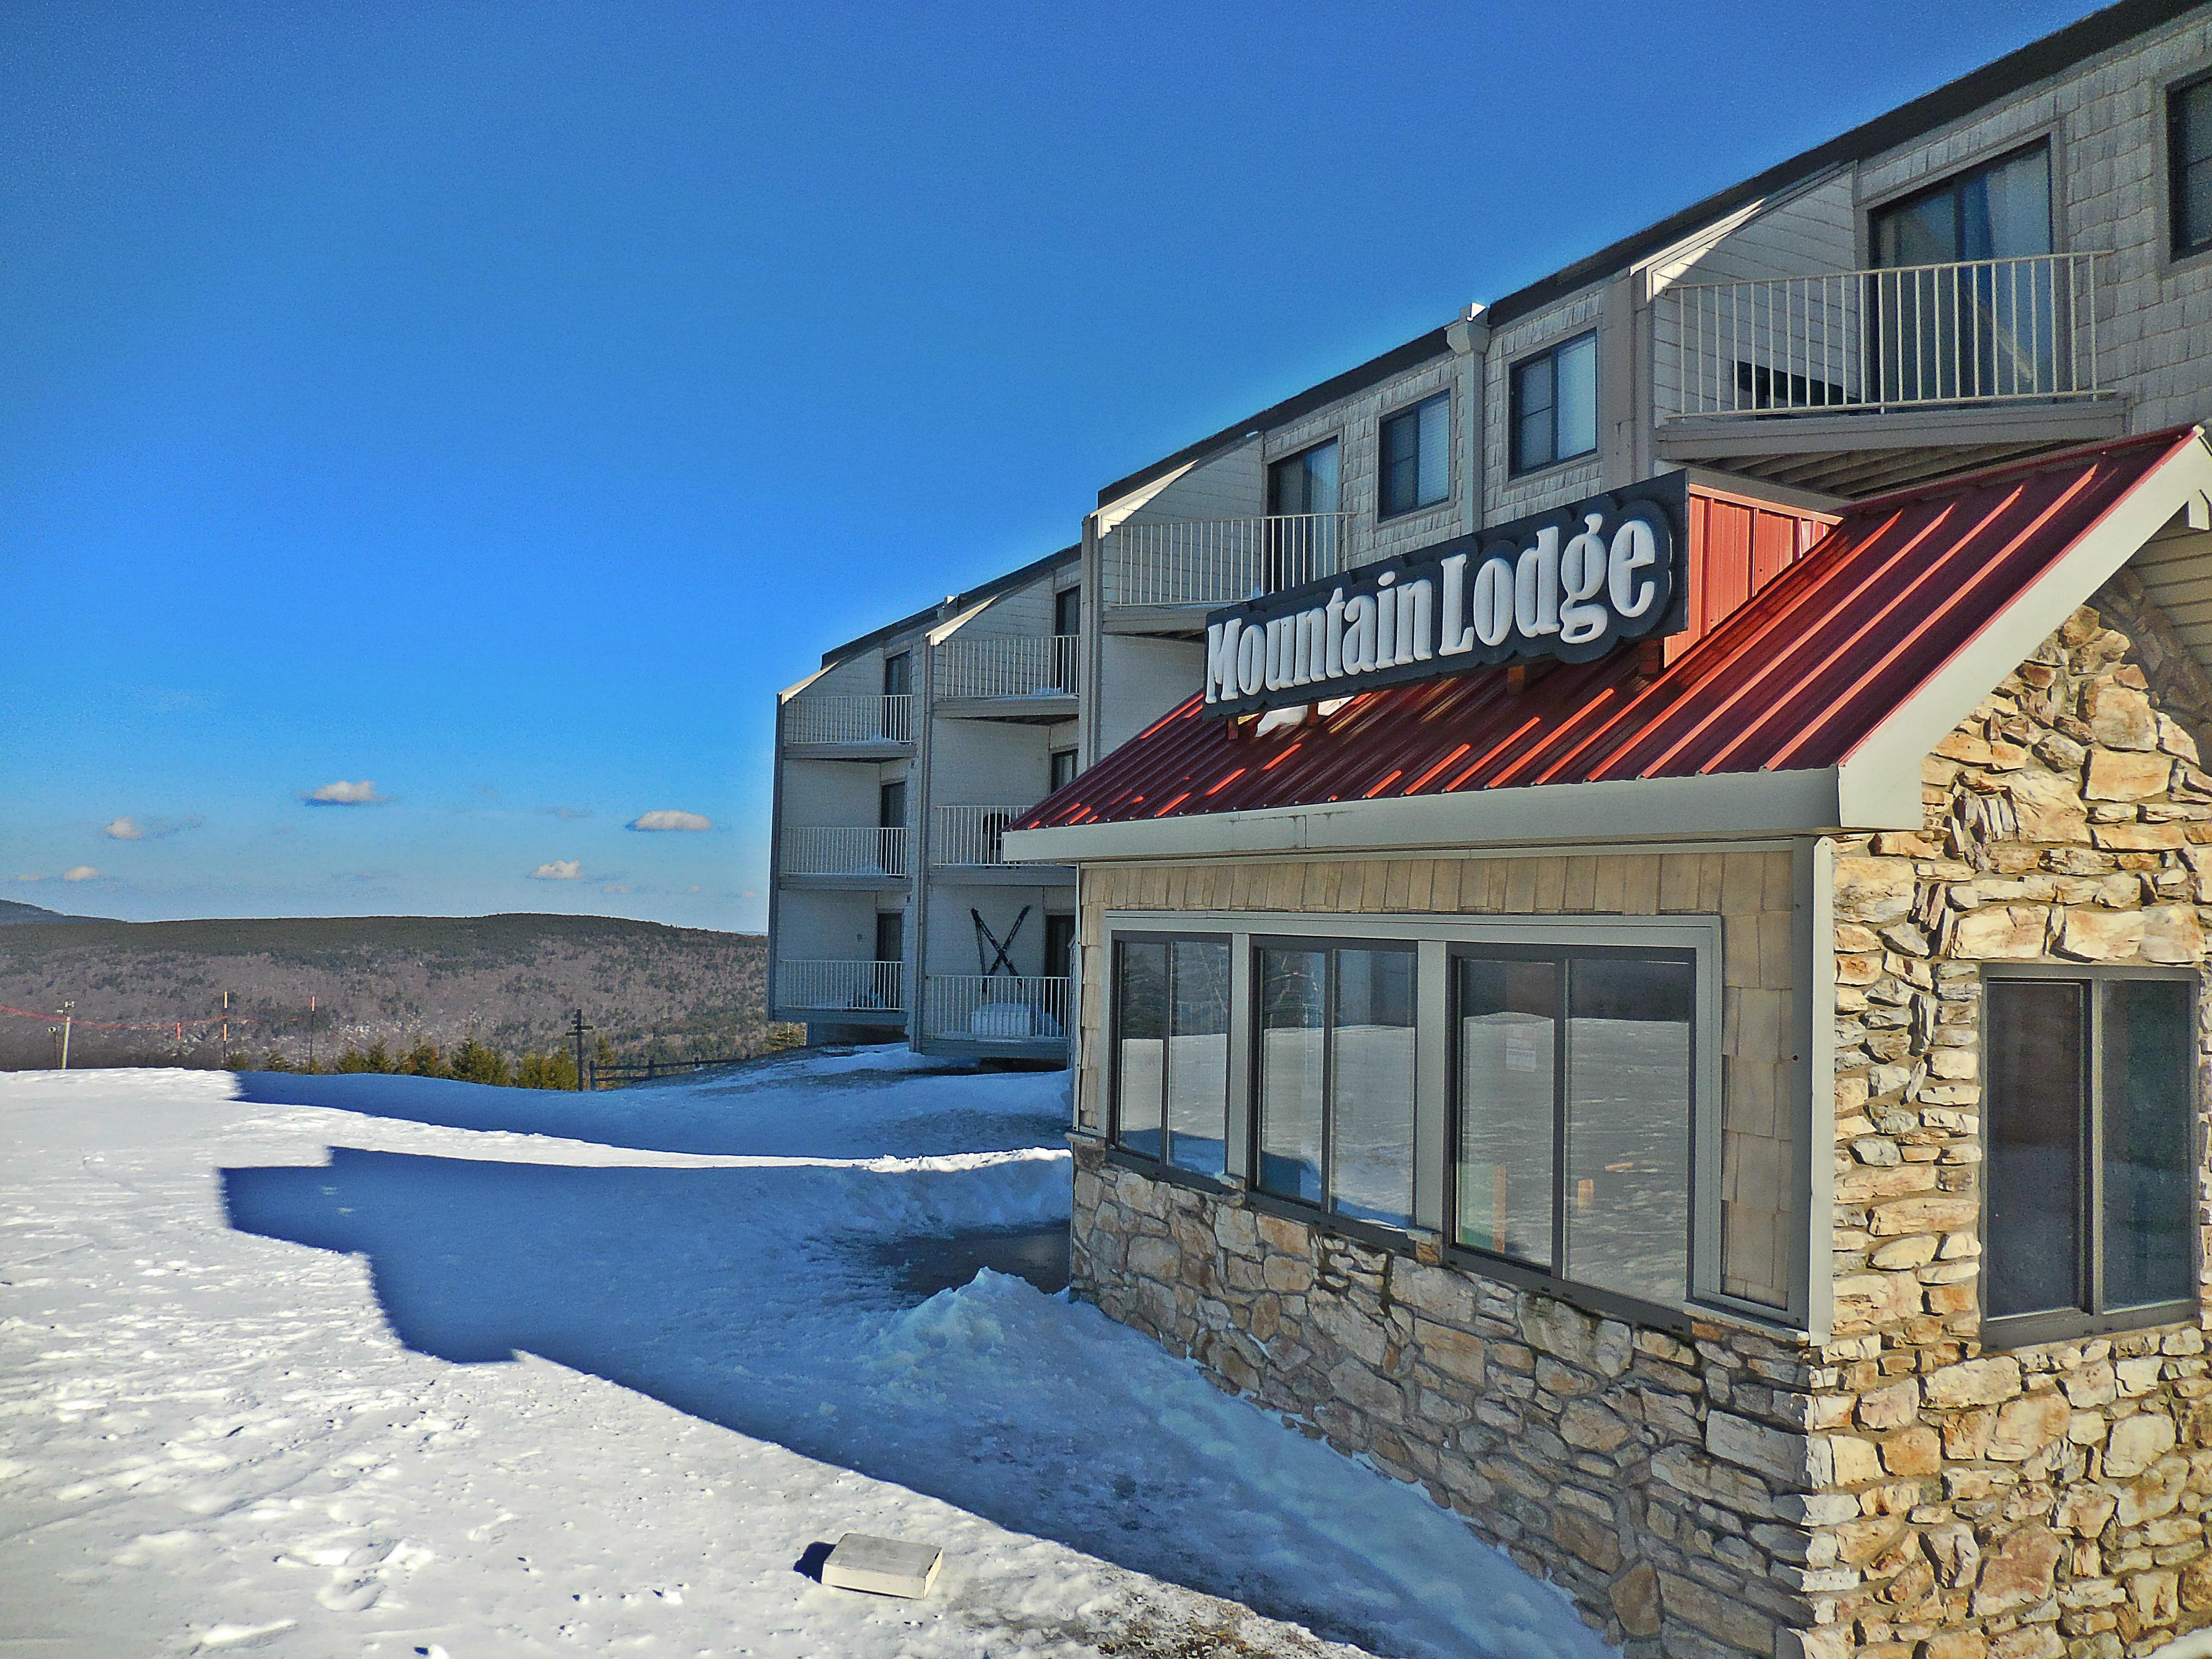 Our back door leads directly to the slopes!